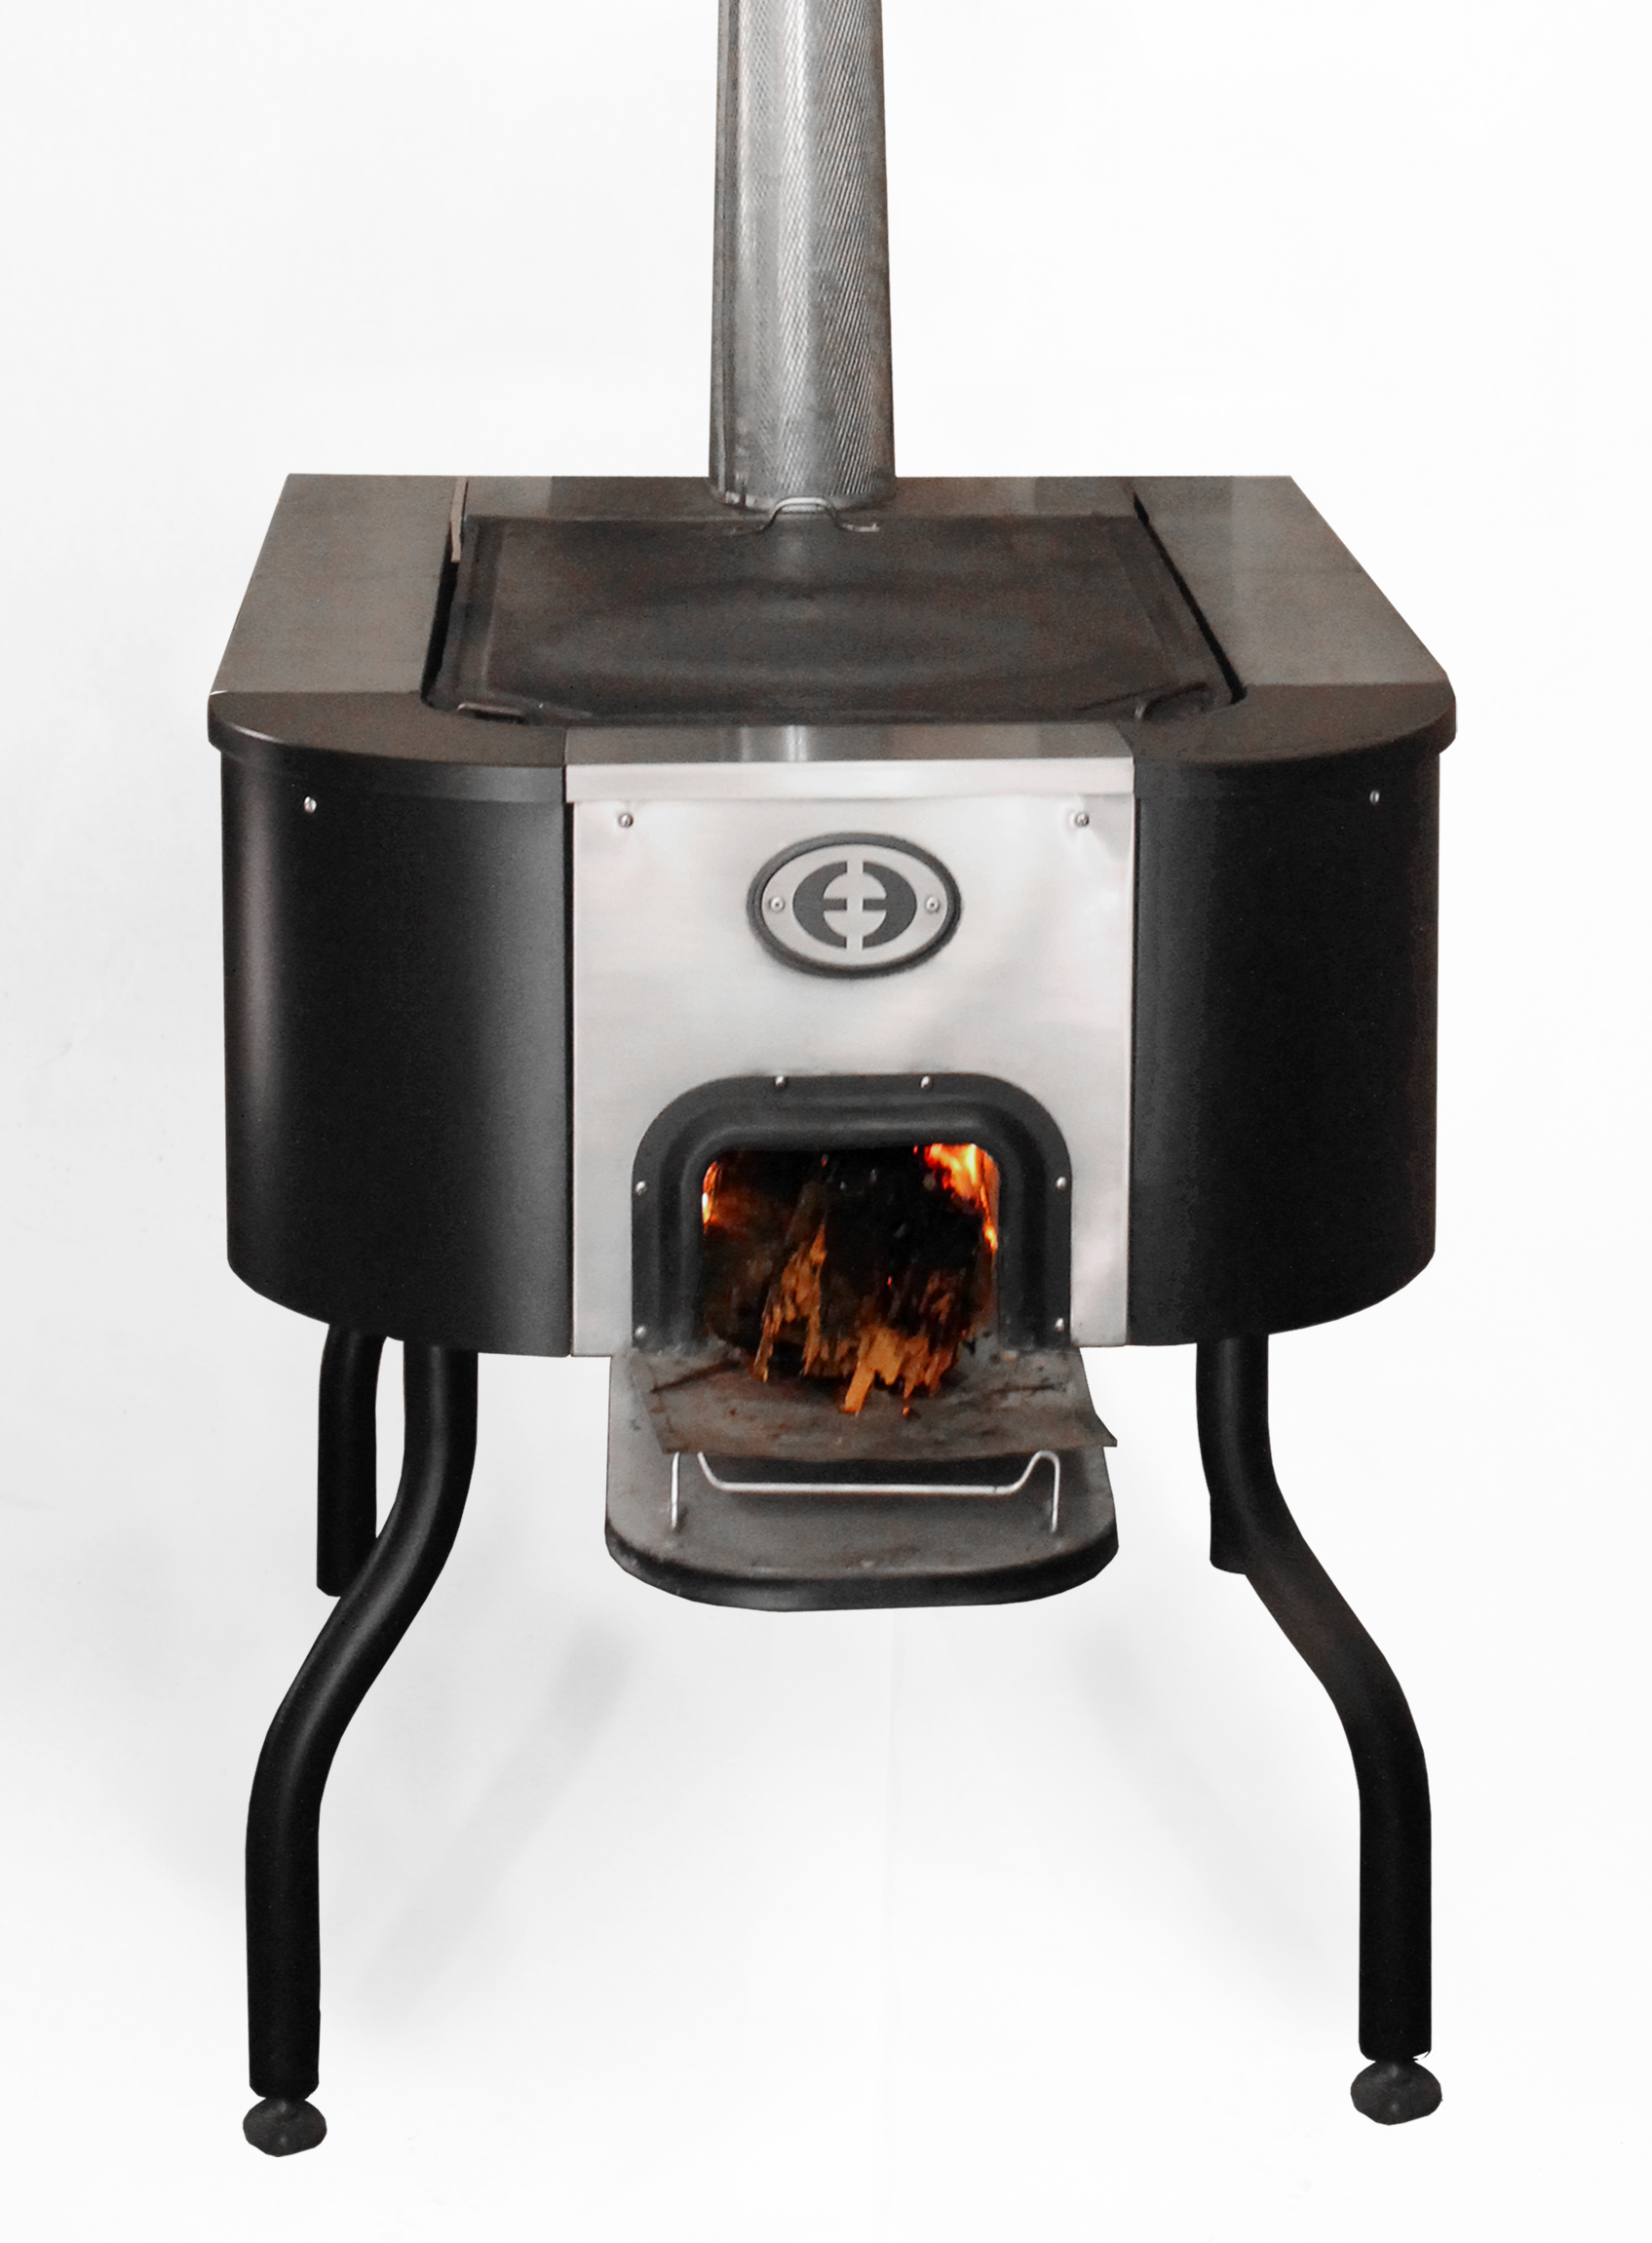 Cooking Griddle | Wood Camp Stoves | Sustainable Stoves ...